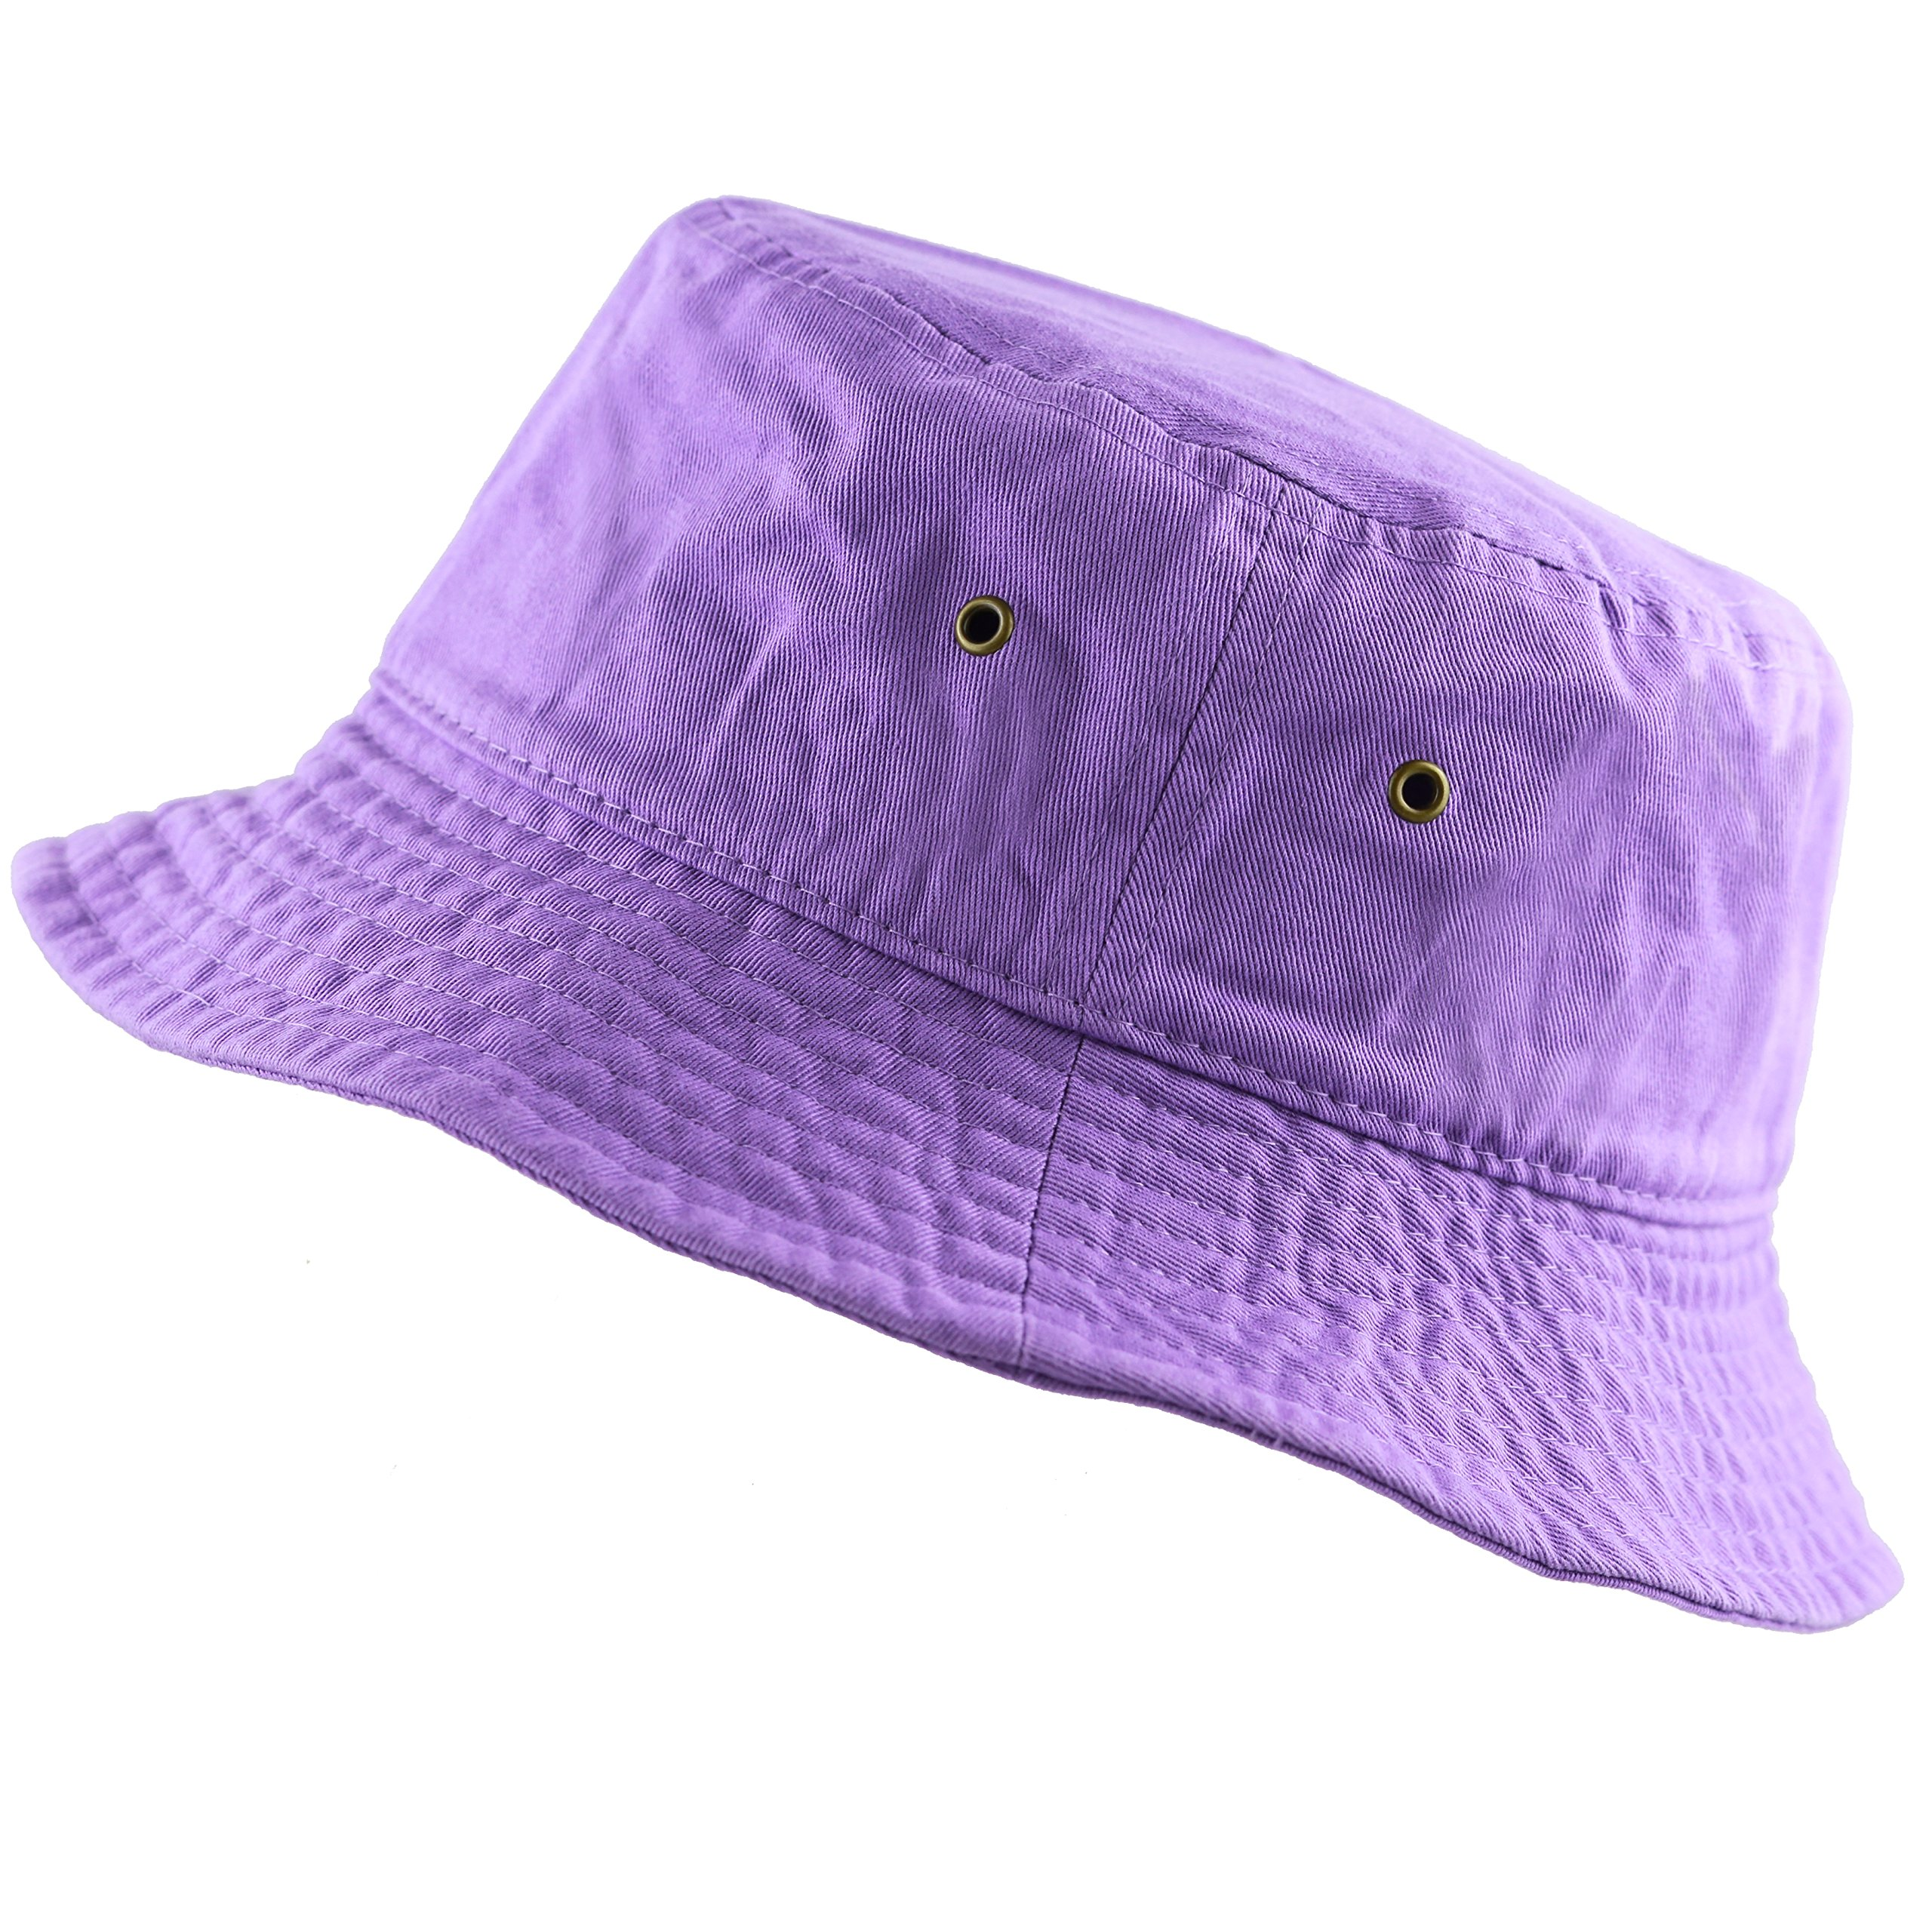 c1f794667 THE HAT DEPOT 300N Unisex 100% Cotton Packable Summer Travel Bucket Beach  Sun Hat product